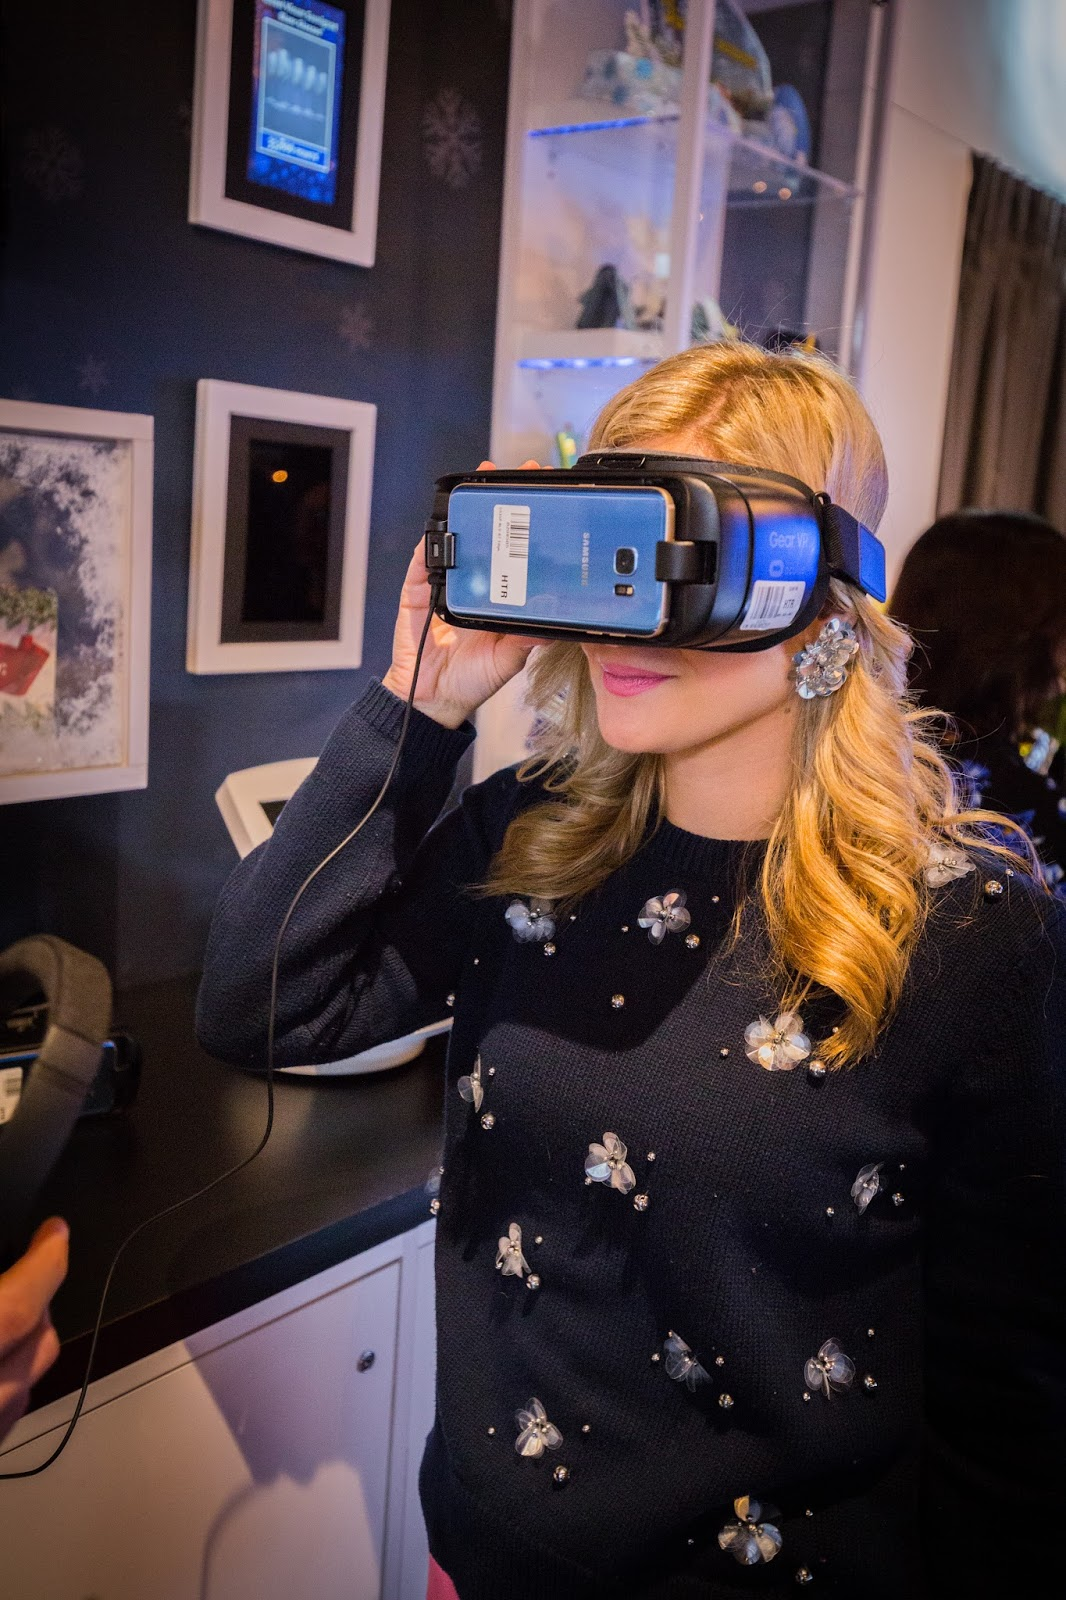 Stress Free Holiday Shopping at the Avion Holiday Boutique - VR Experience